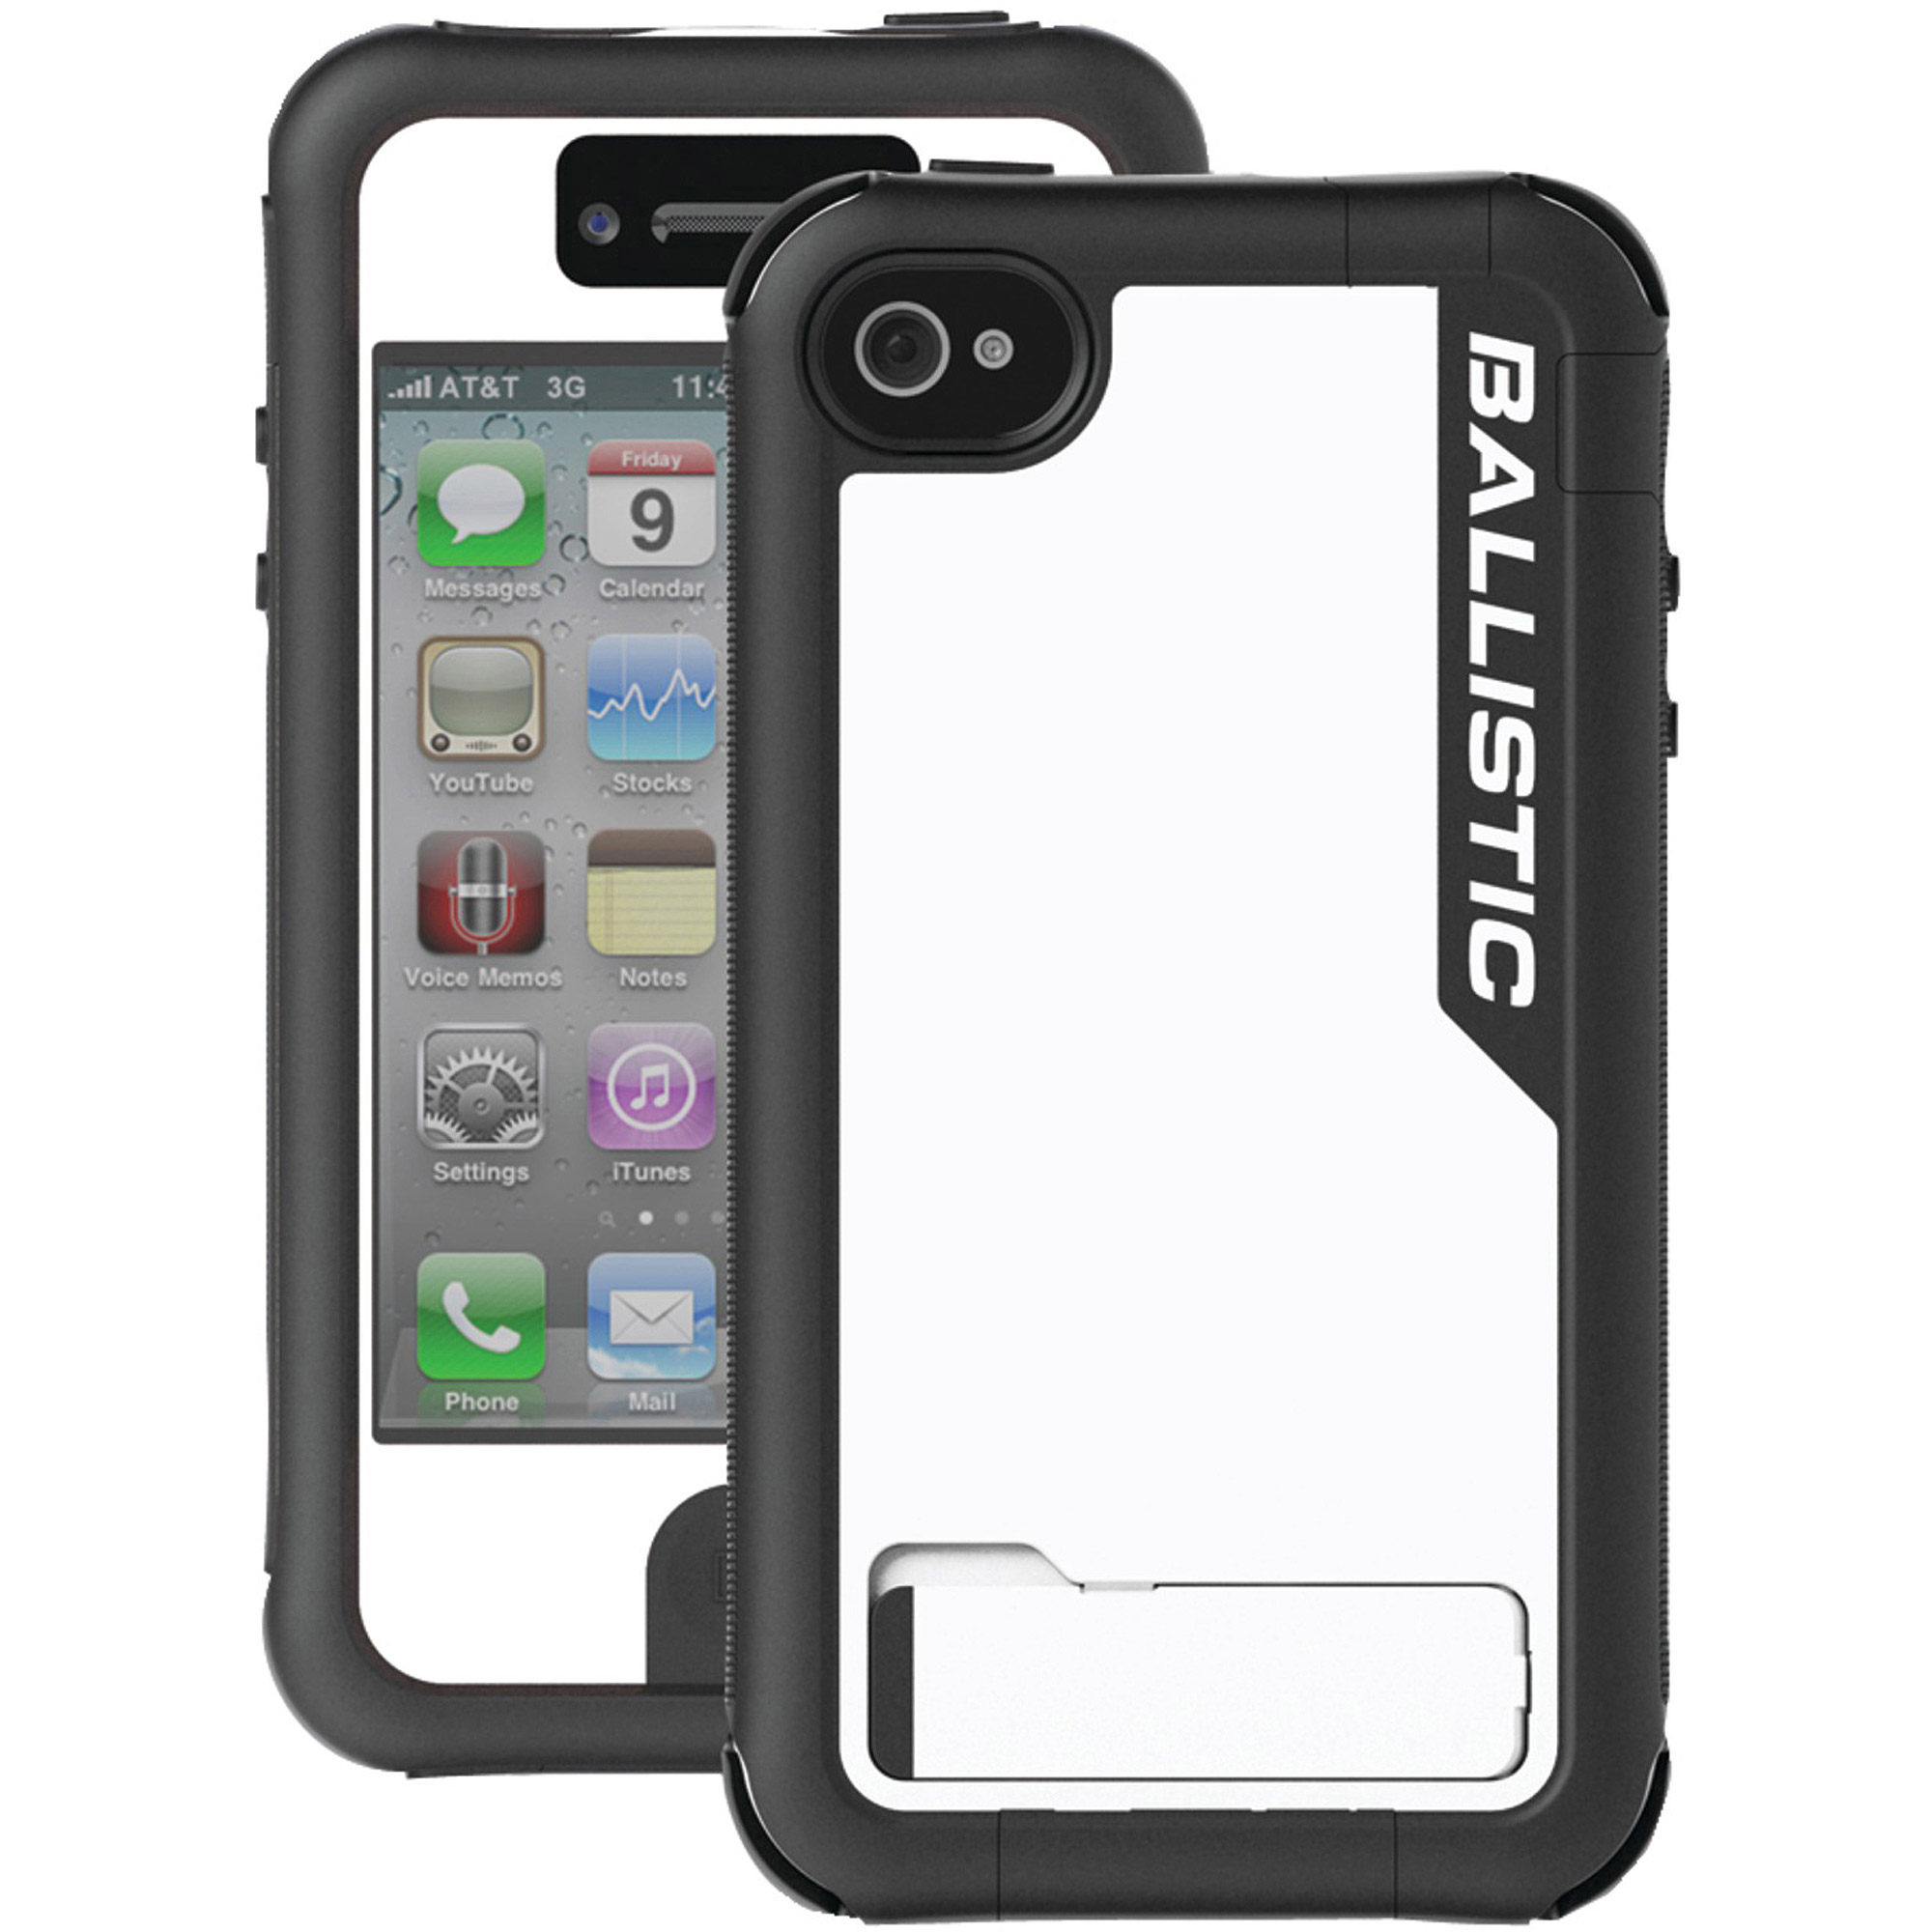 iphone 4s walmart ballistic iphone 4 4s every1 walmart 10941